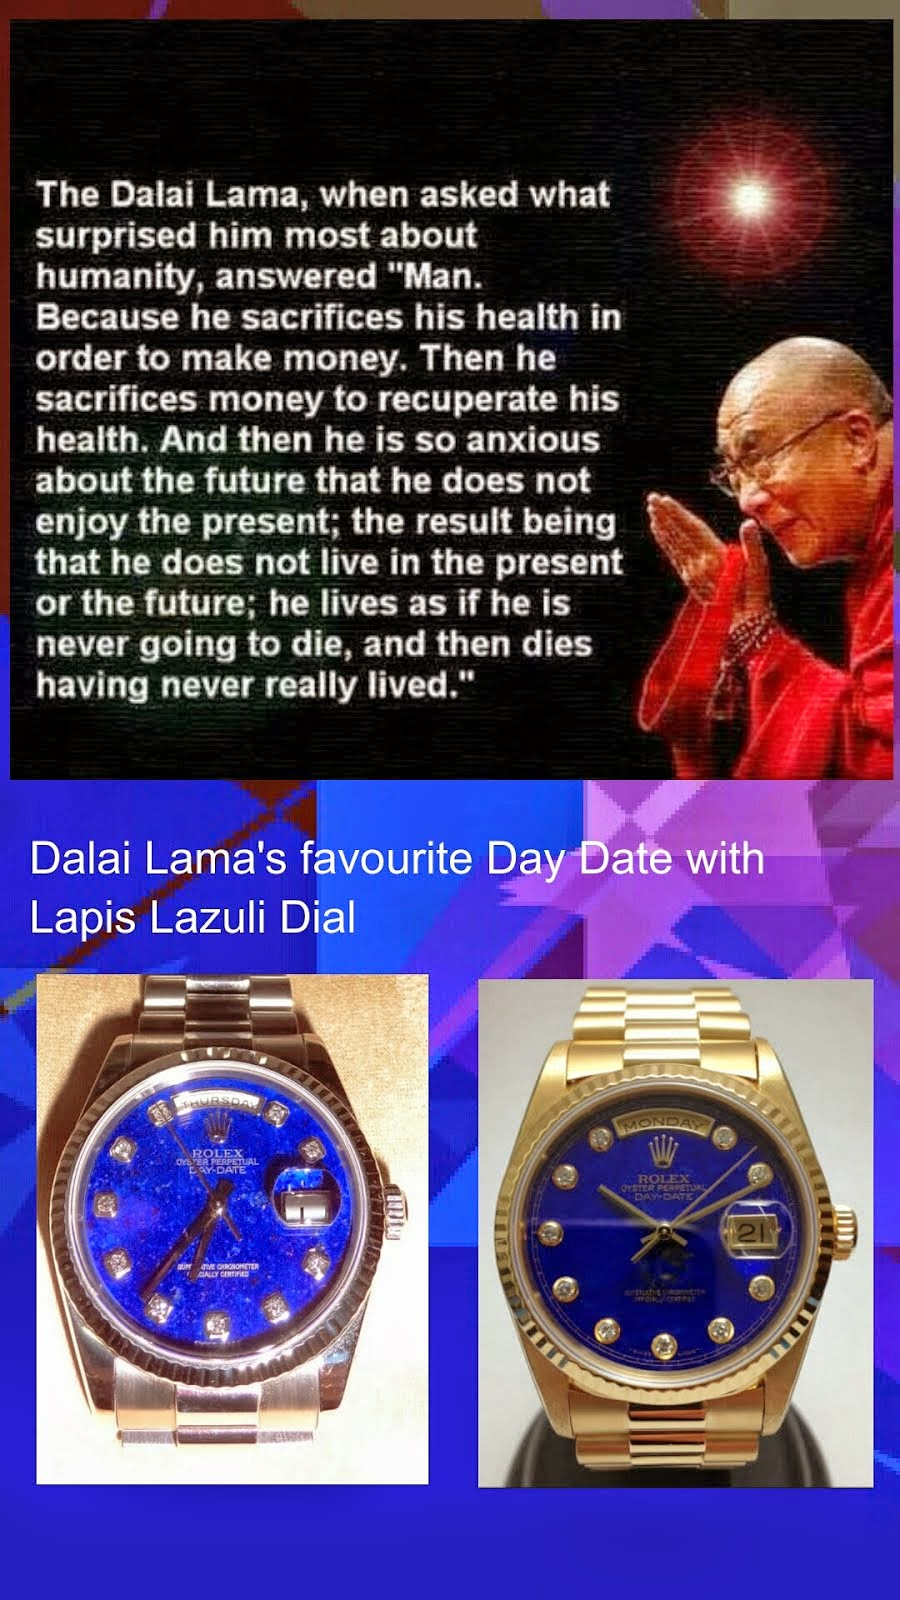 Dalai Lama's Inspirative Quote about Life!